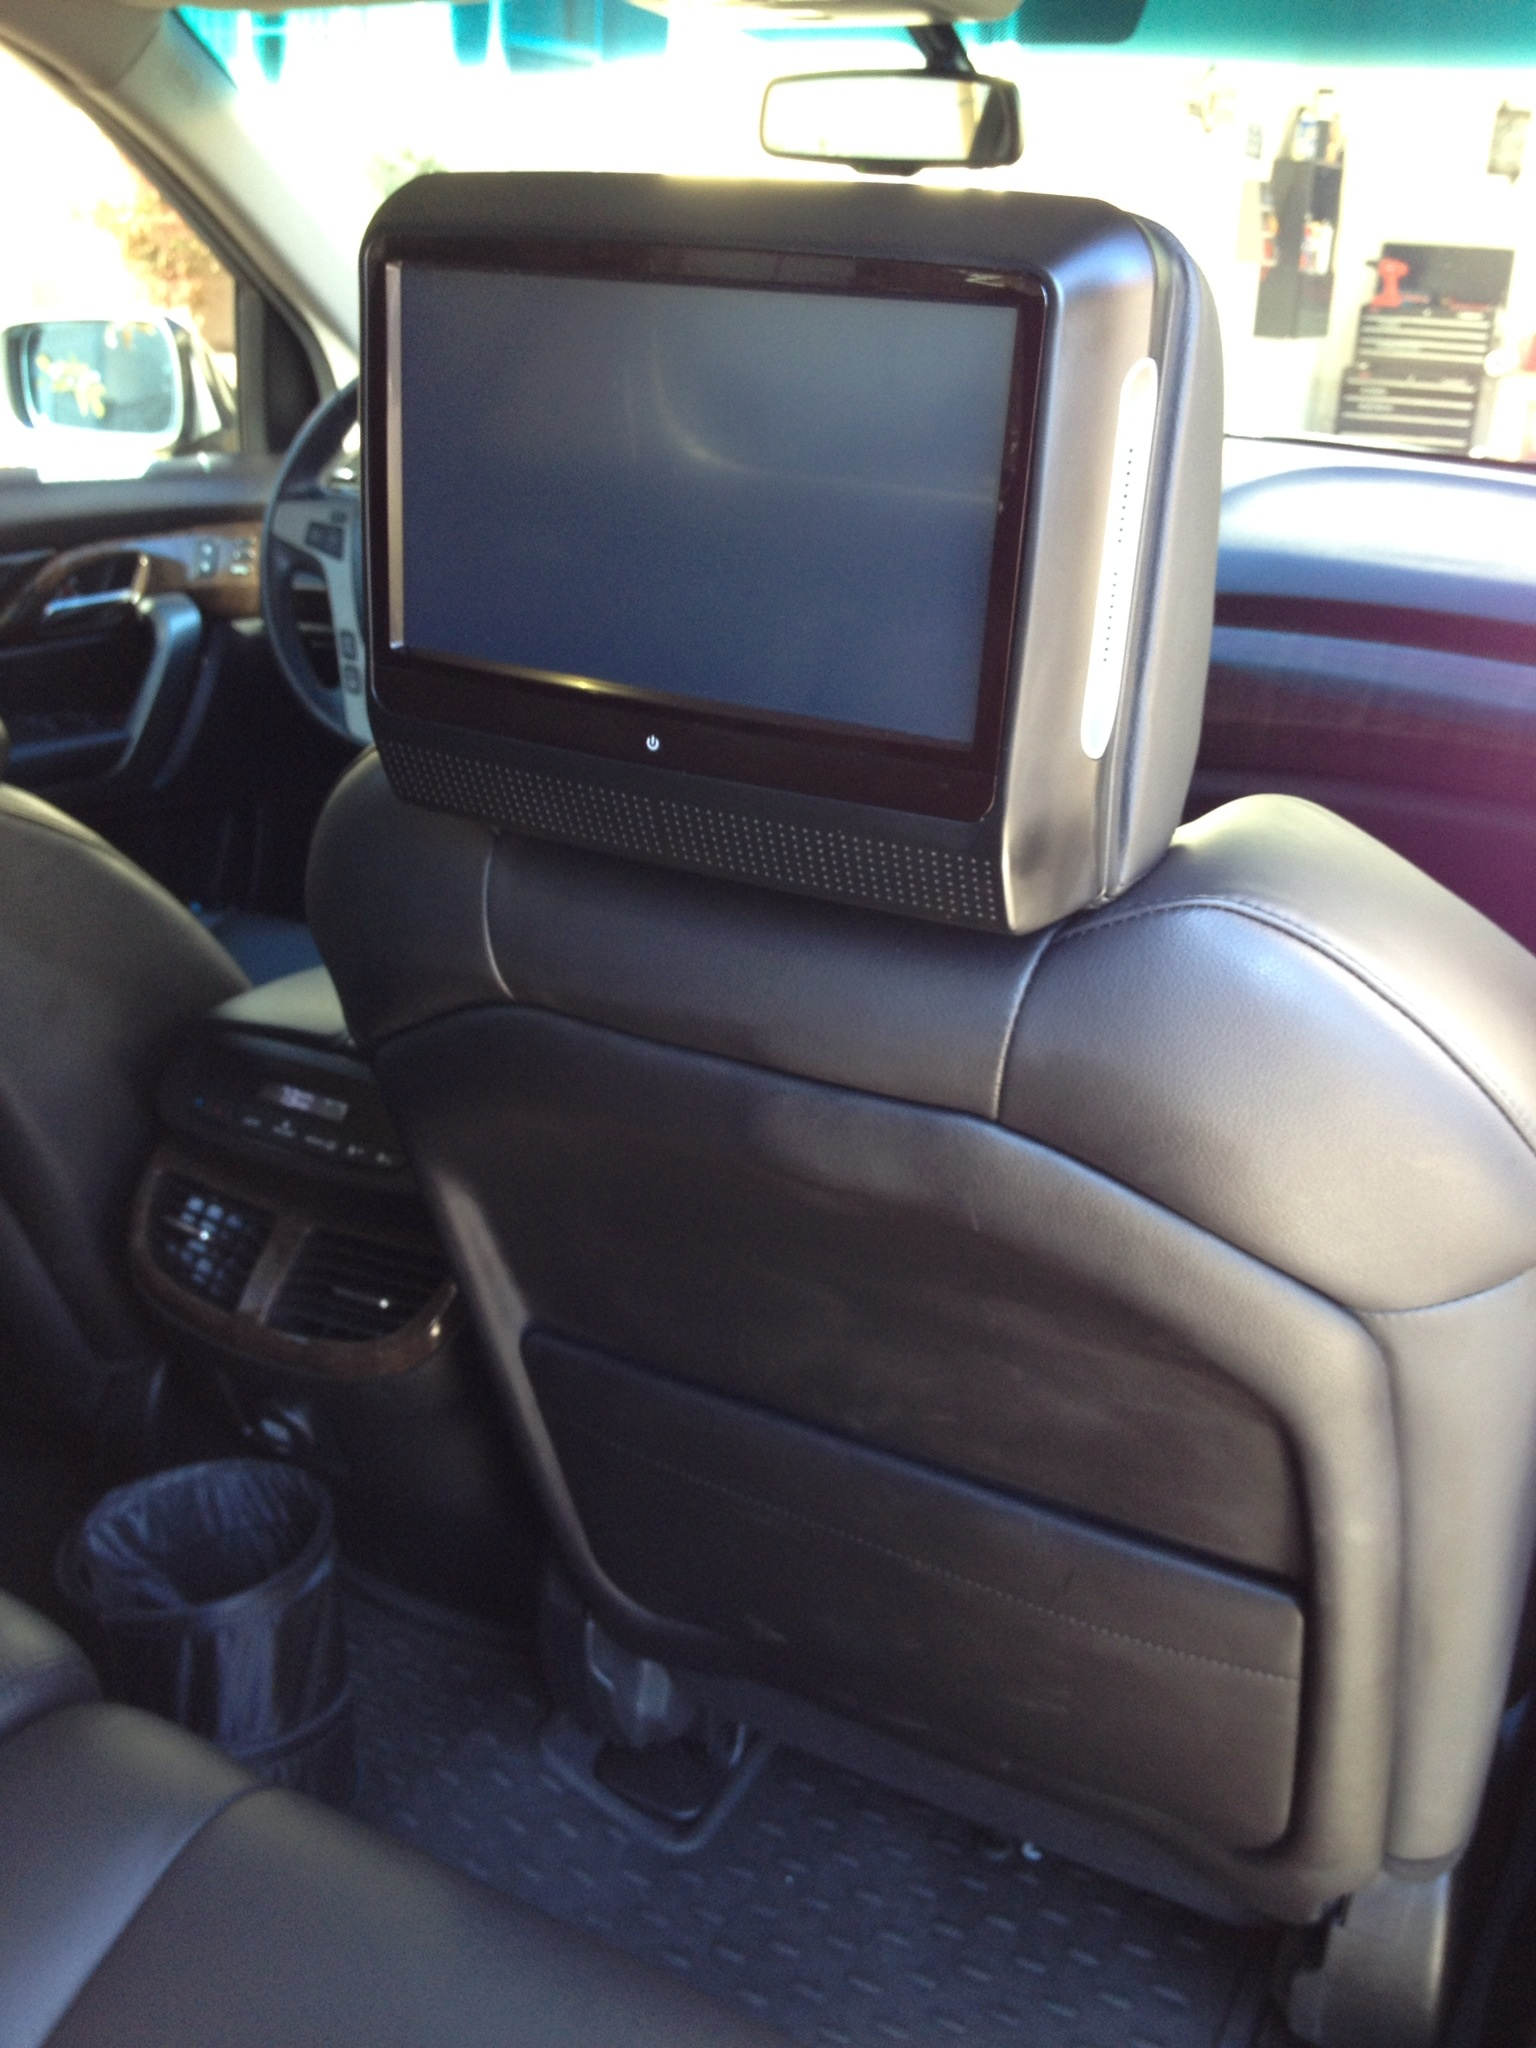 Added some headrest monitors-image.jpg